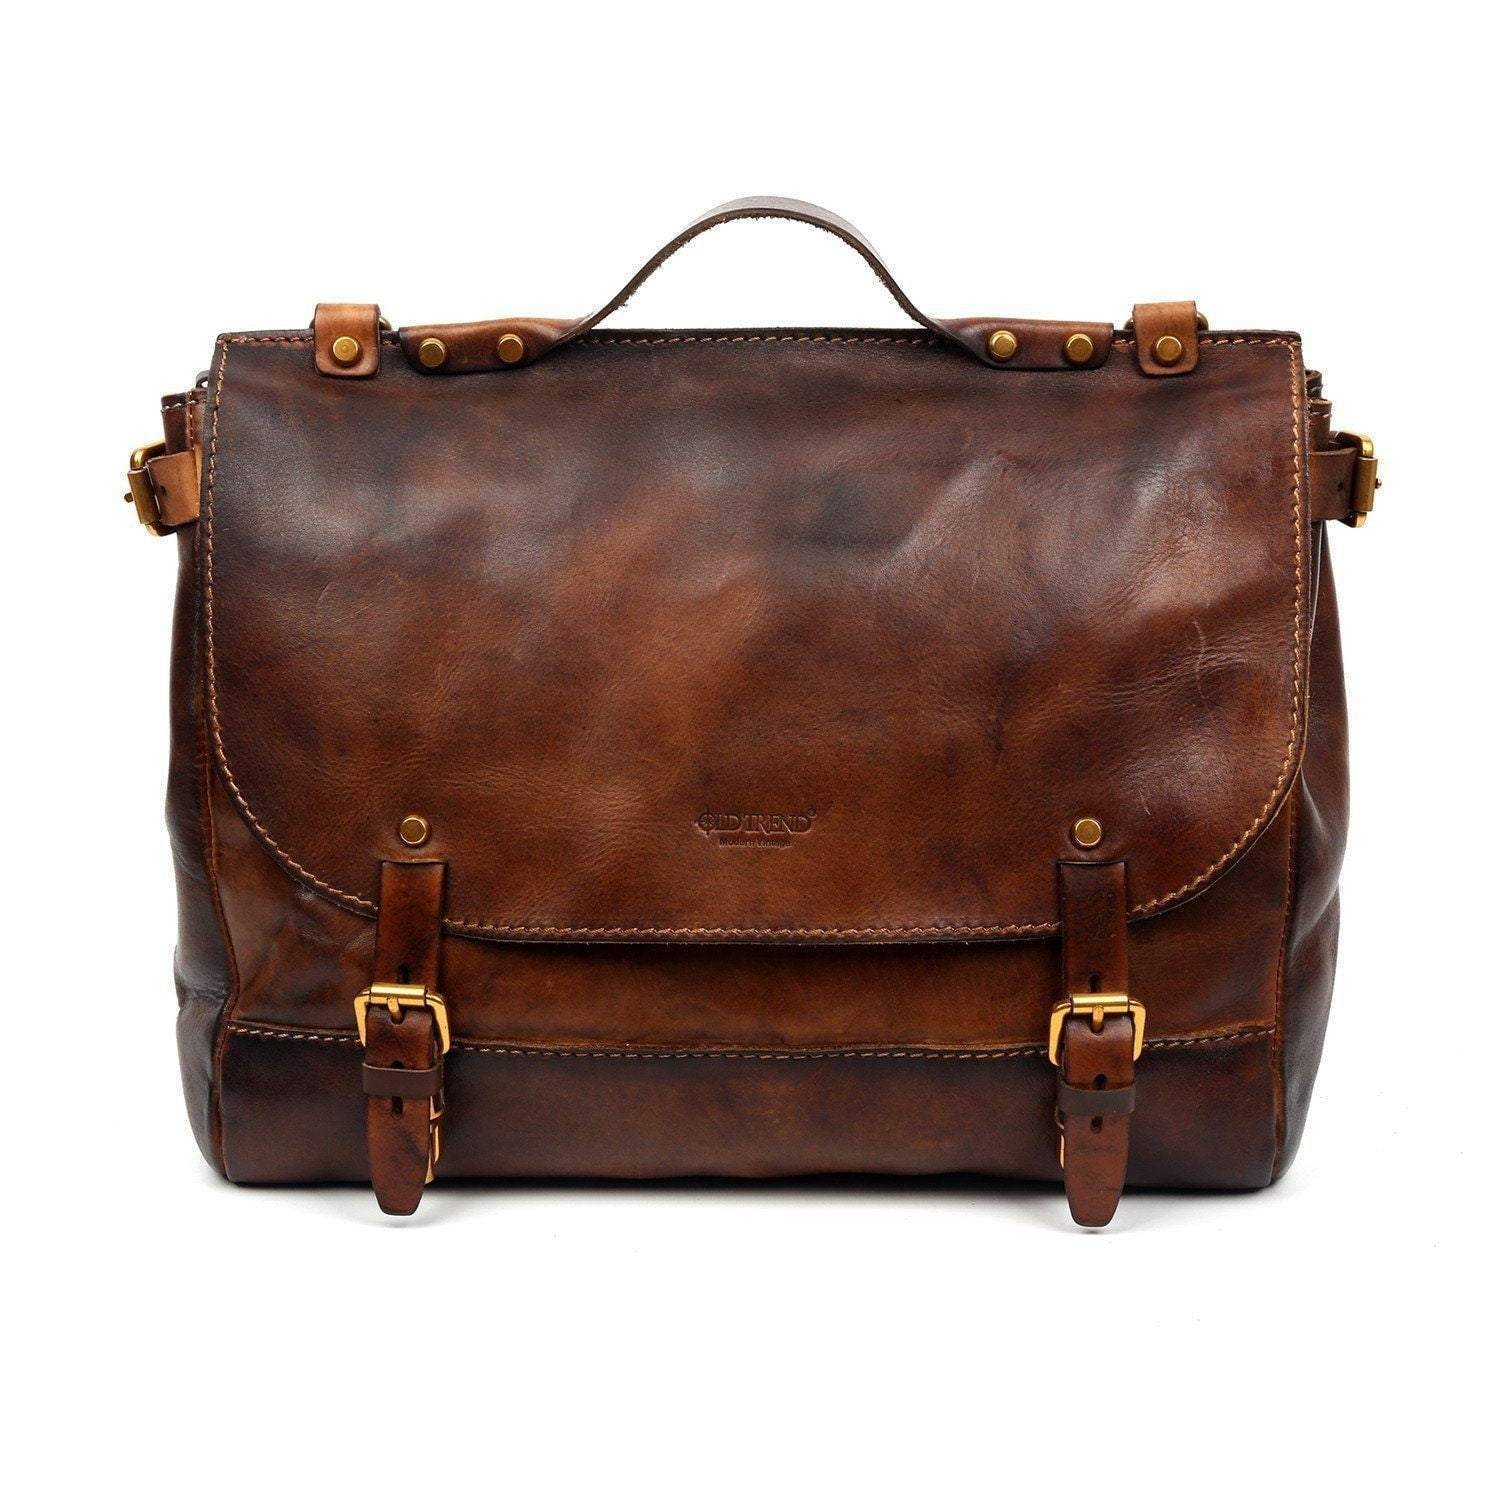 Sandstorm Leather Messenger